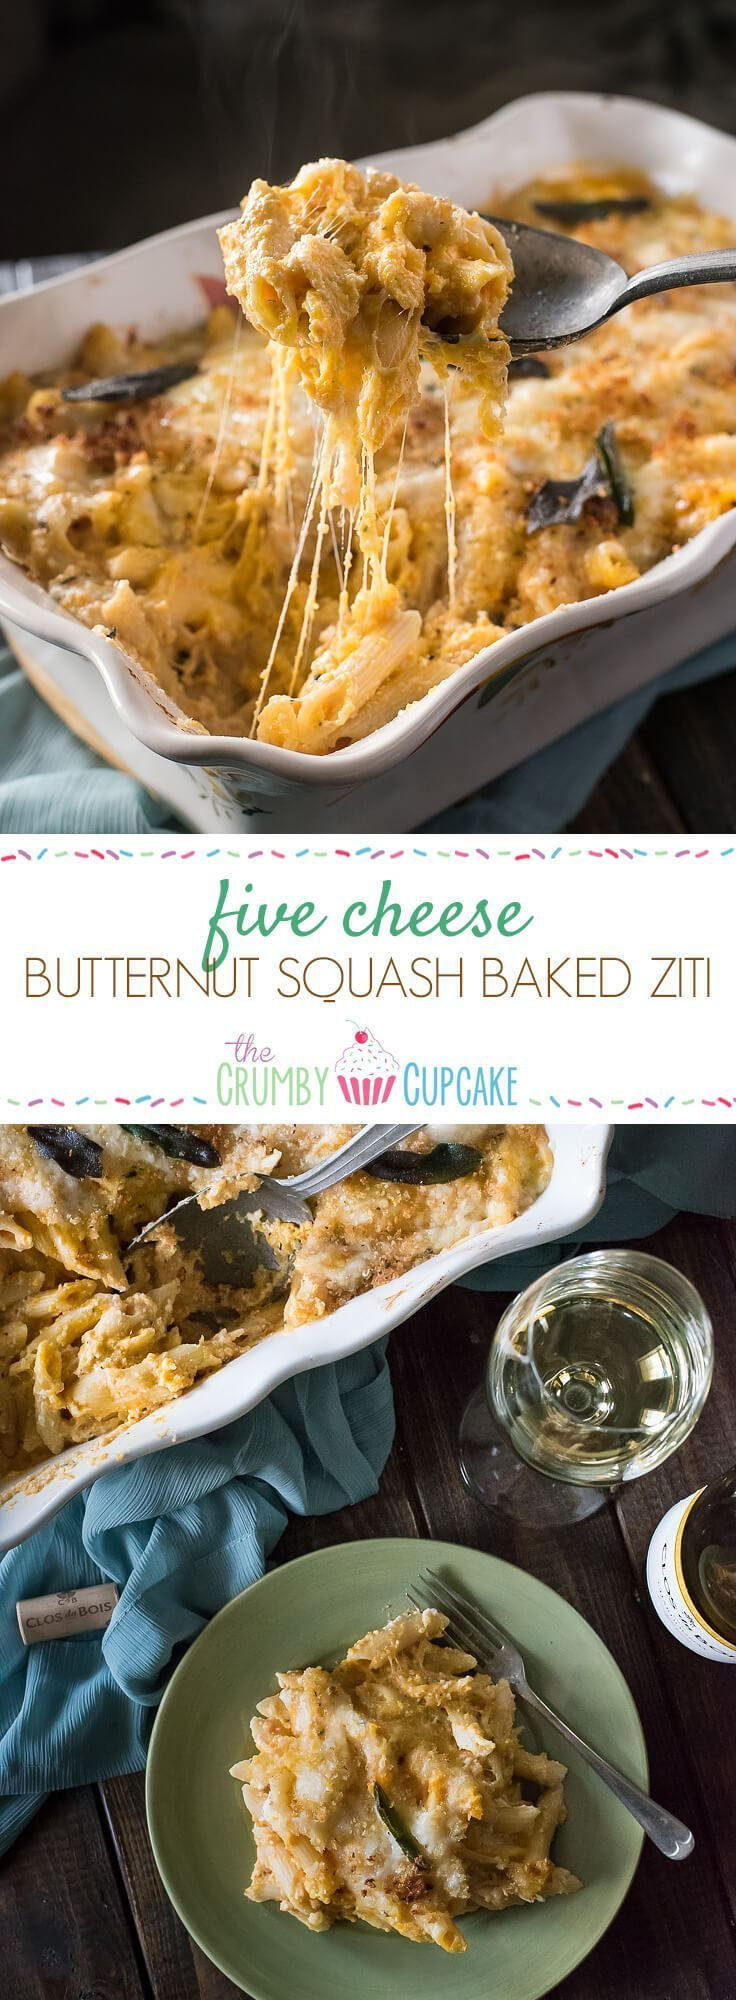 [Msg 4 21+] A tasty seasonal spin on an easy Italian dish, this Five Cheese Butternut Squash Baked Ziti makes a great meal between holidays or a sensational side to the main event! AD #talkofthetable @BarillaUS @ClosduBois